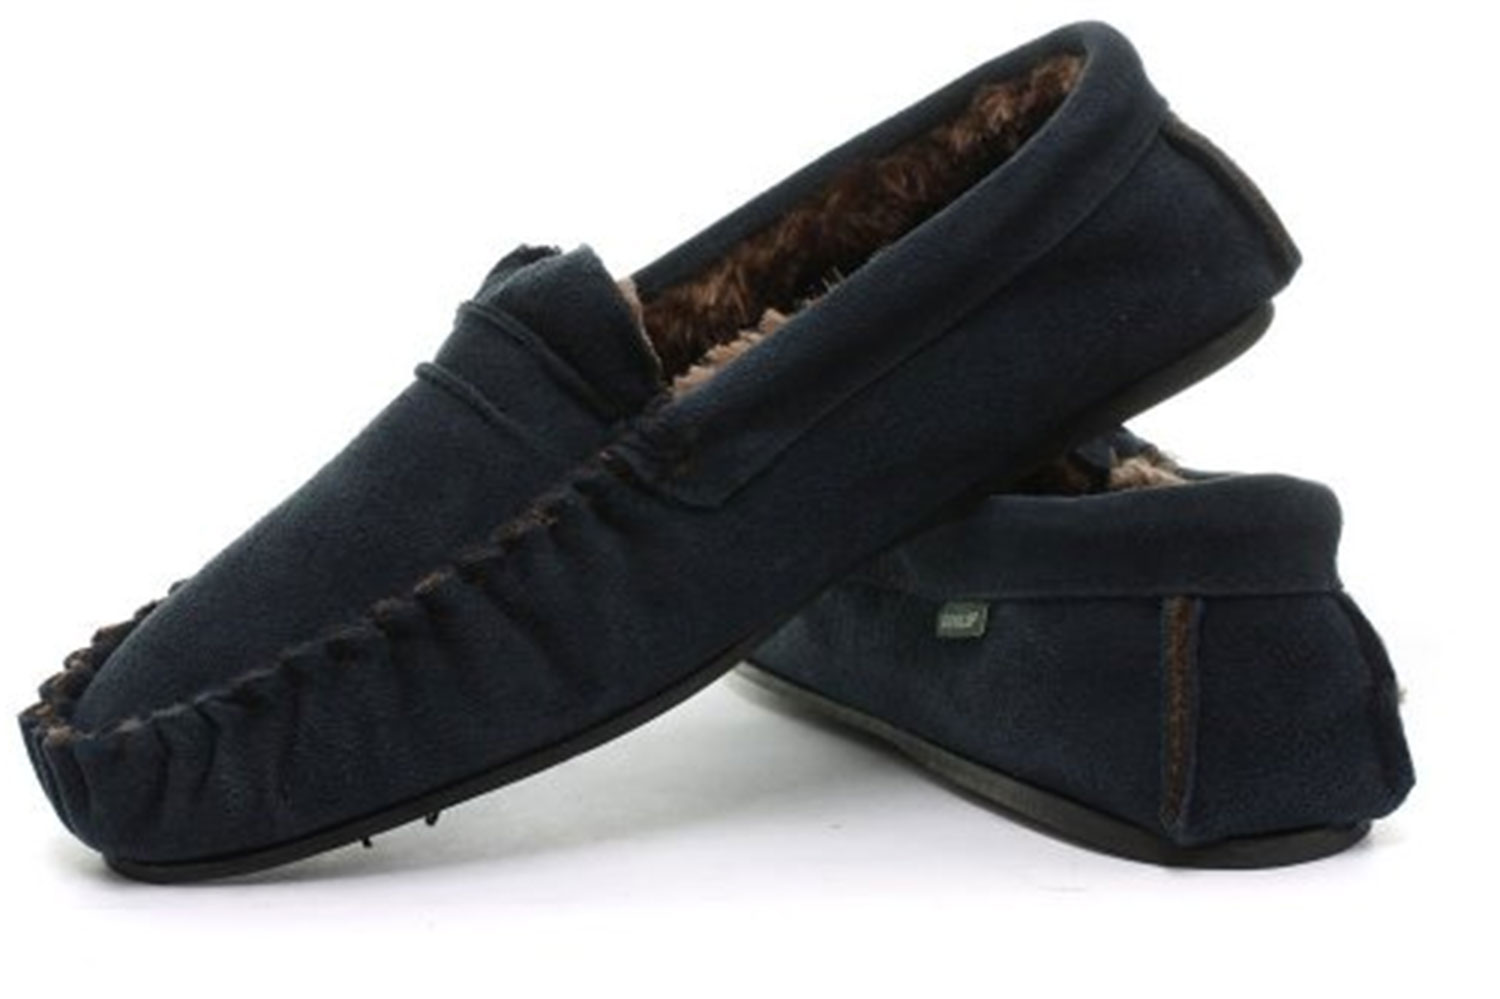 dunlop genuine leather suede moccasin slippers soft house shoes sizes